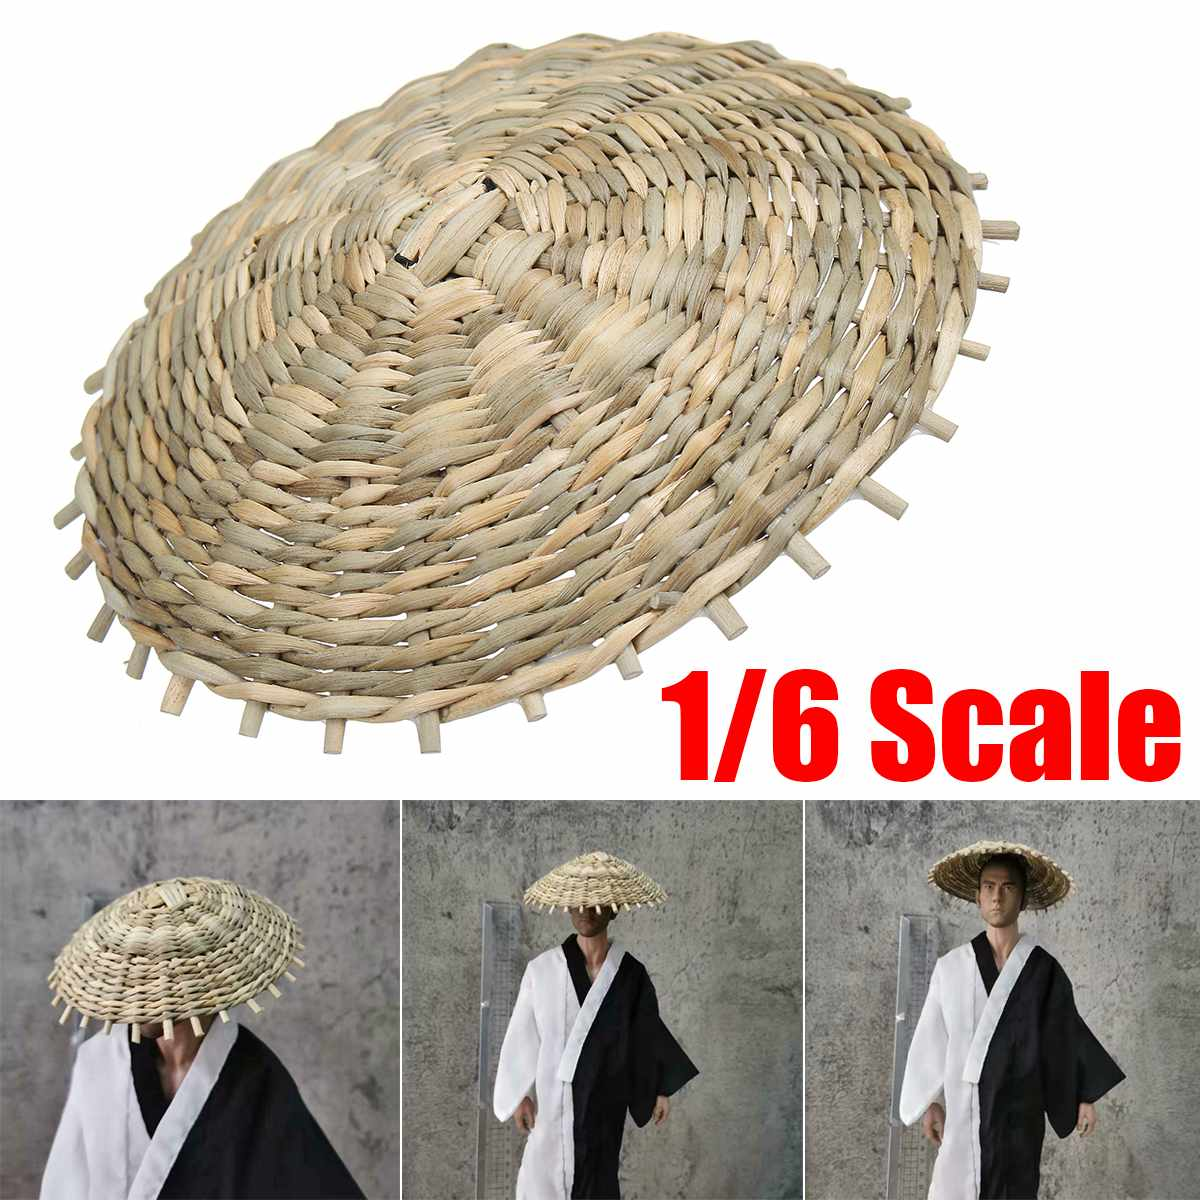 1:6 Scale Hat Model Bamboo Hat For Japanese Samurai|Parts & Accessories| |  - title=